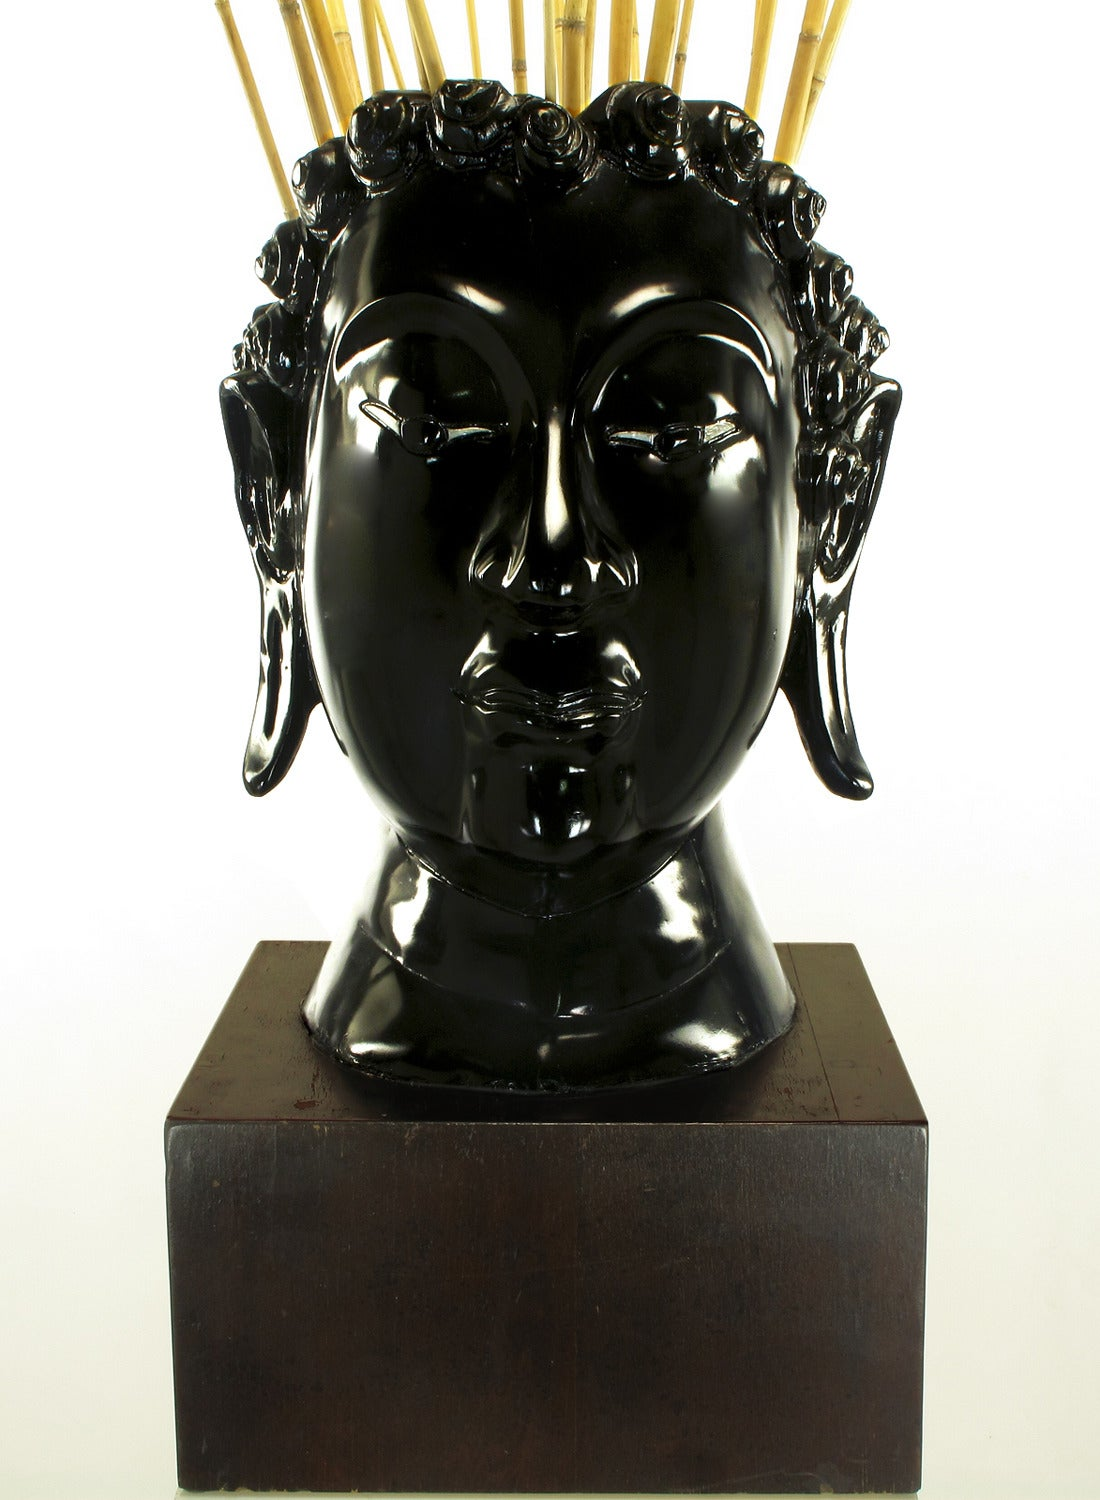 Buddha-Form Mahogany and Black Lacquer Sculpture on White Lucite Pedestal For Sale 2